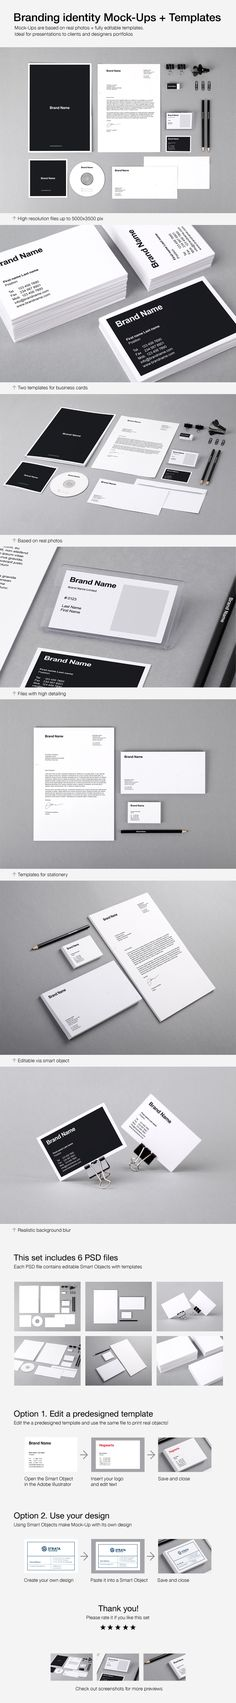 Branding Identity Mock-Ups and Templates by Vitaly Stepanenko on Behance. #mockups #brand #identity